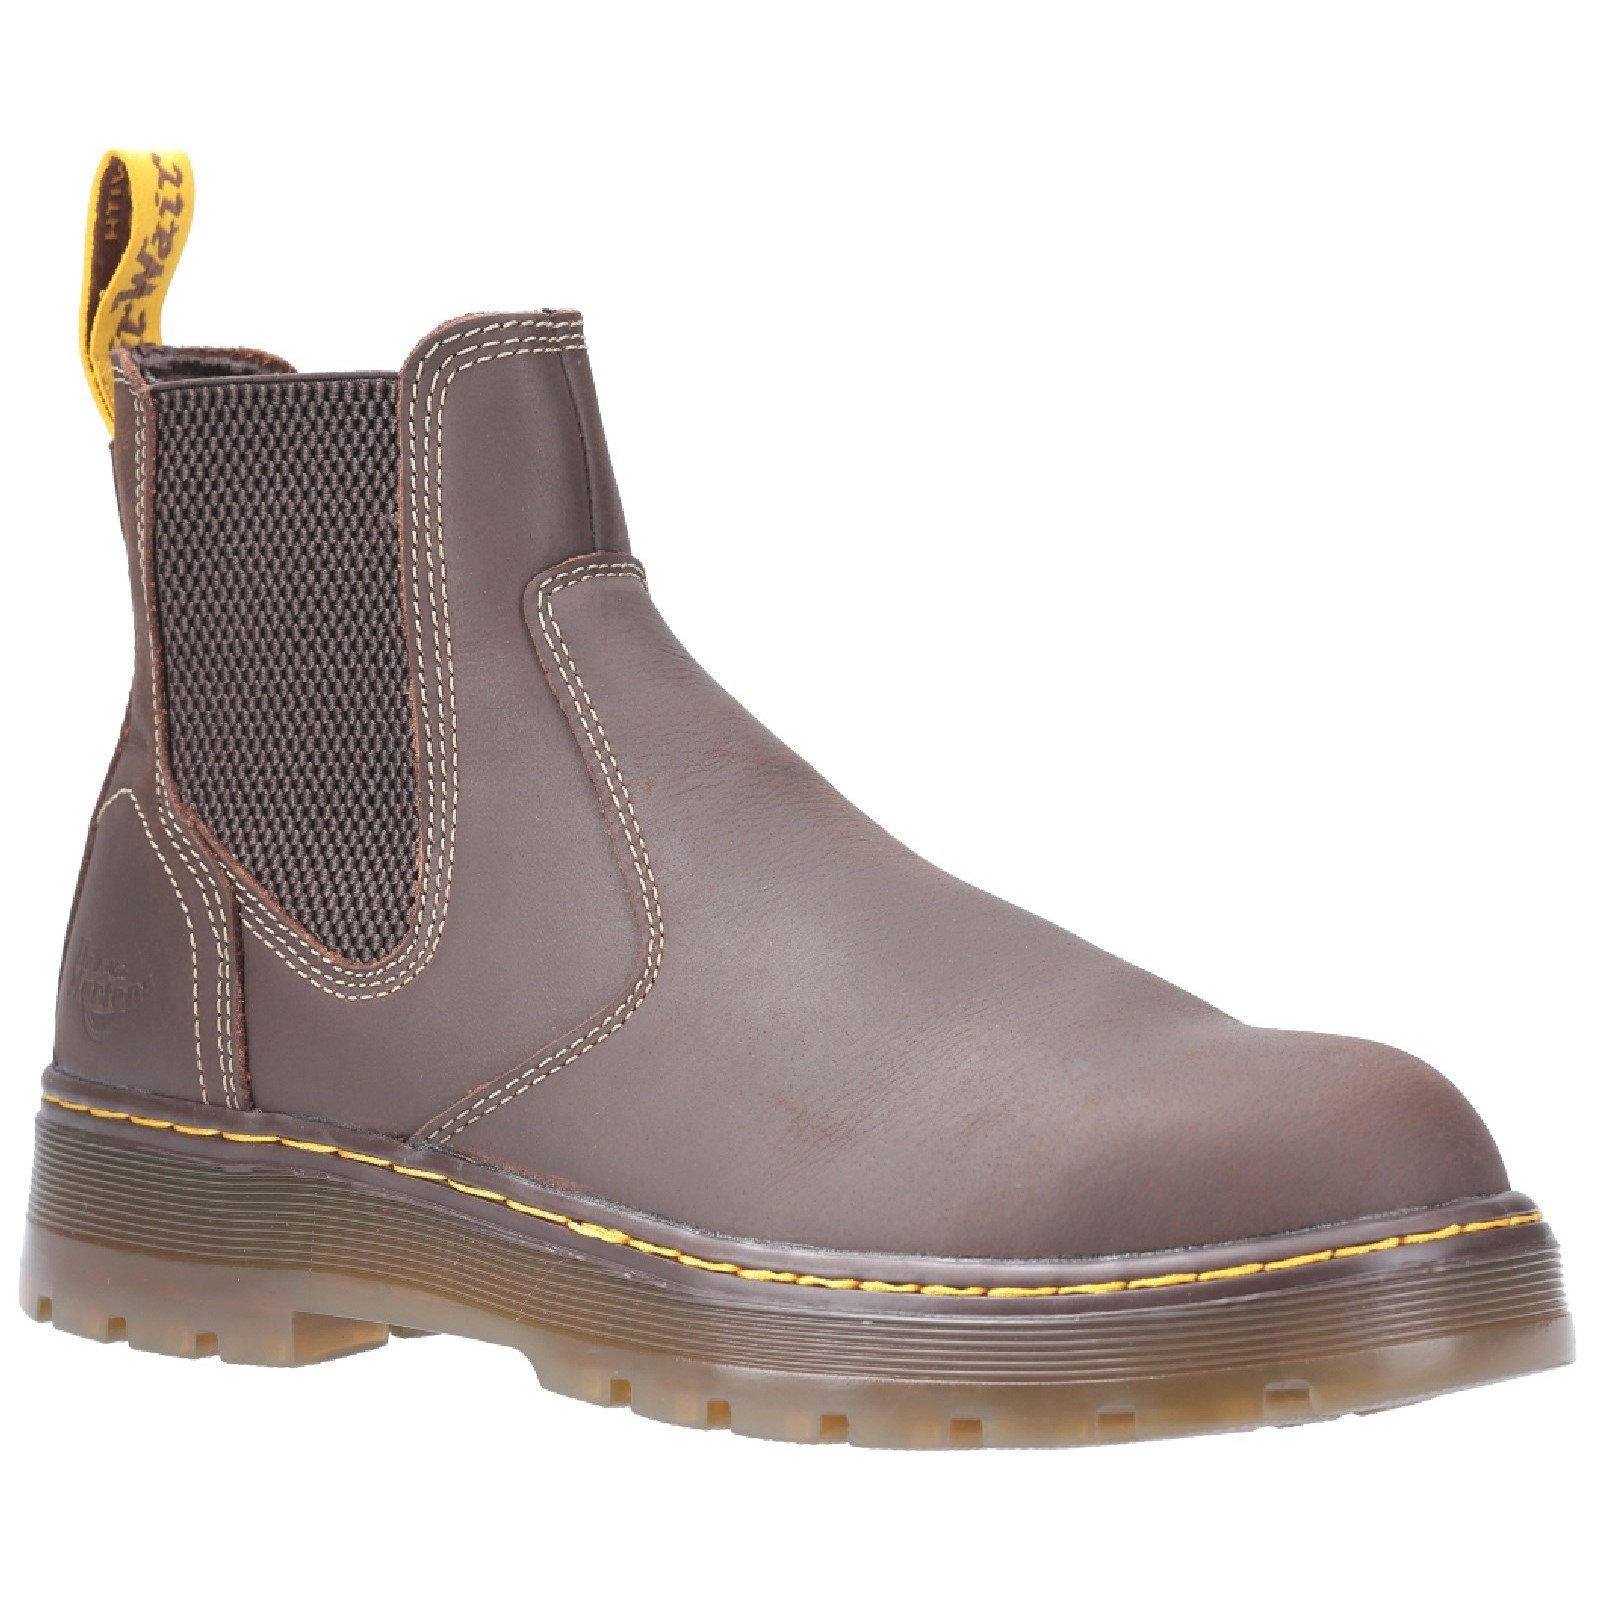 Dr Martens Unisex Eaves SB Elasticated Safety Boot Brown 29519 - Brown 11